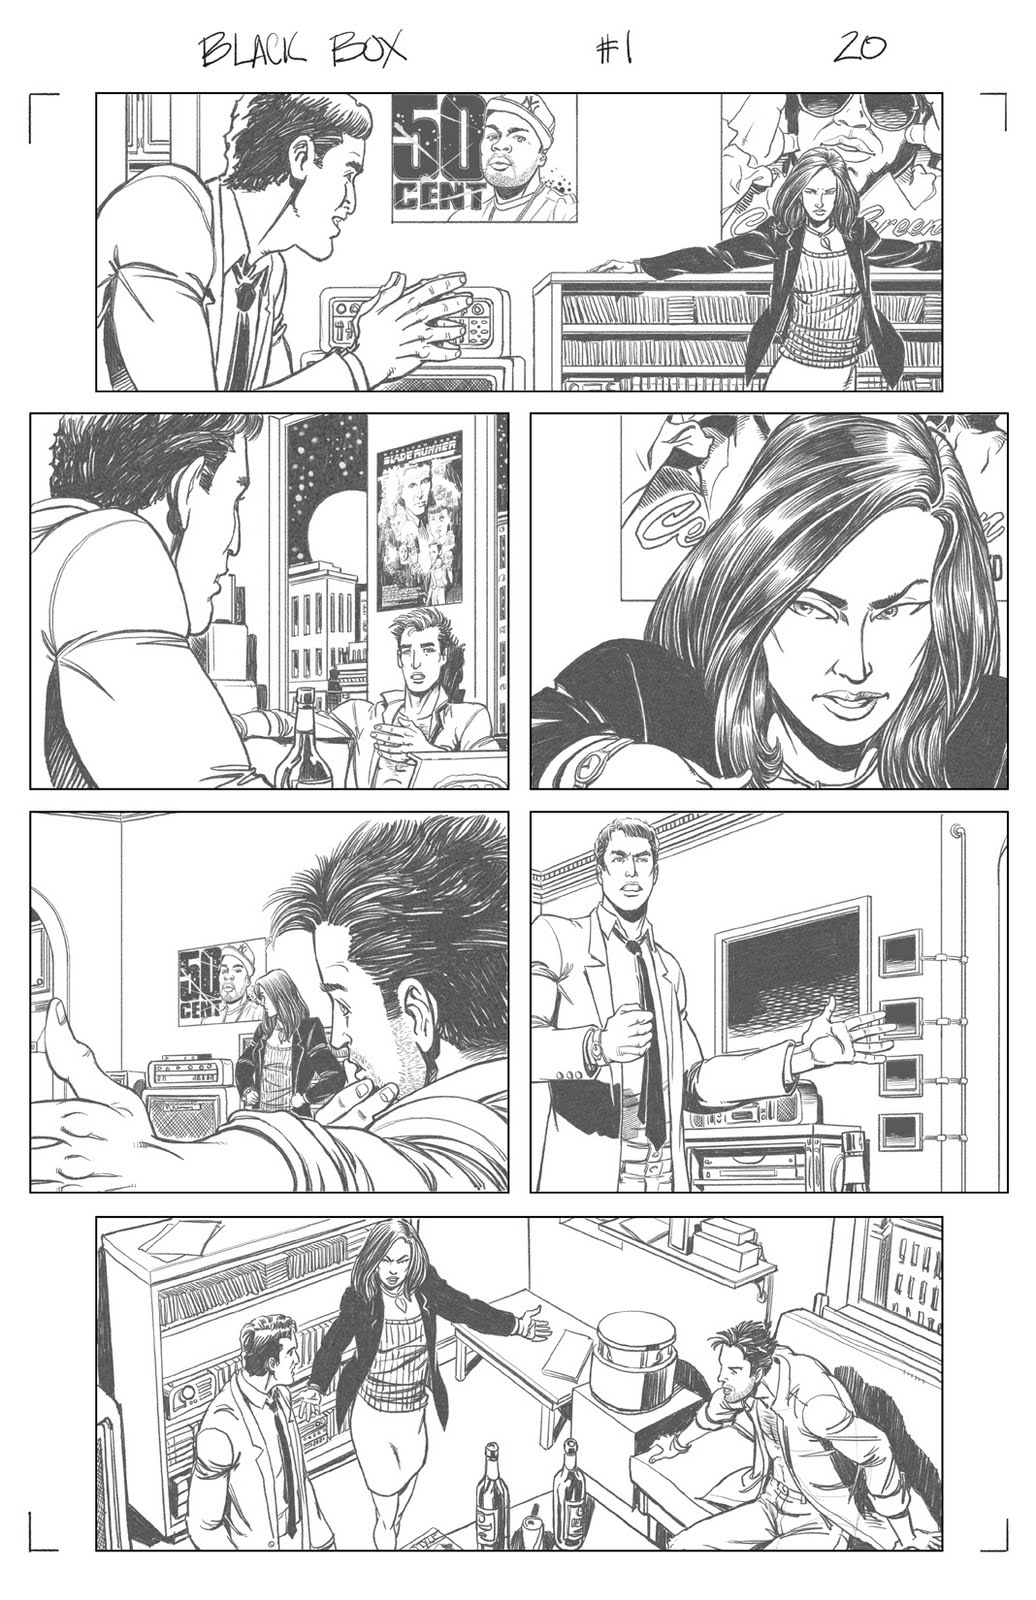 Black%2BBox_Pencils_Page%2B20